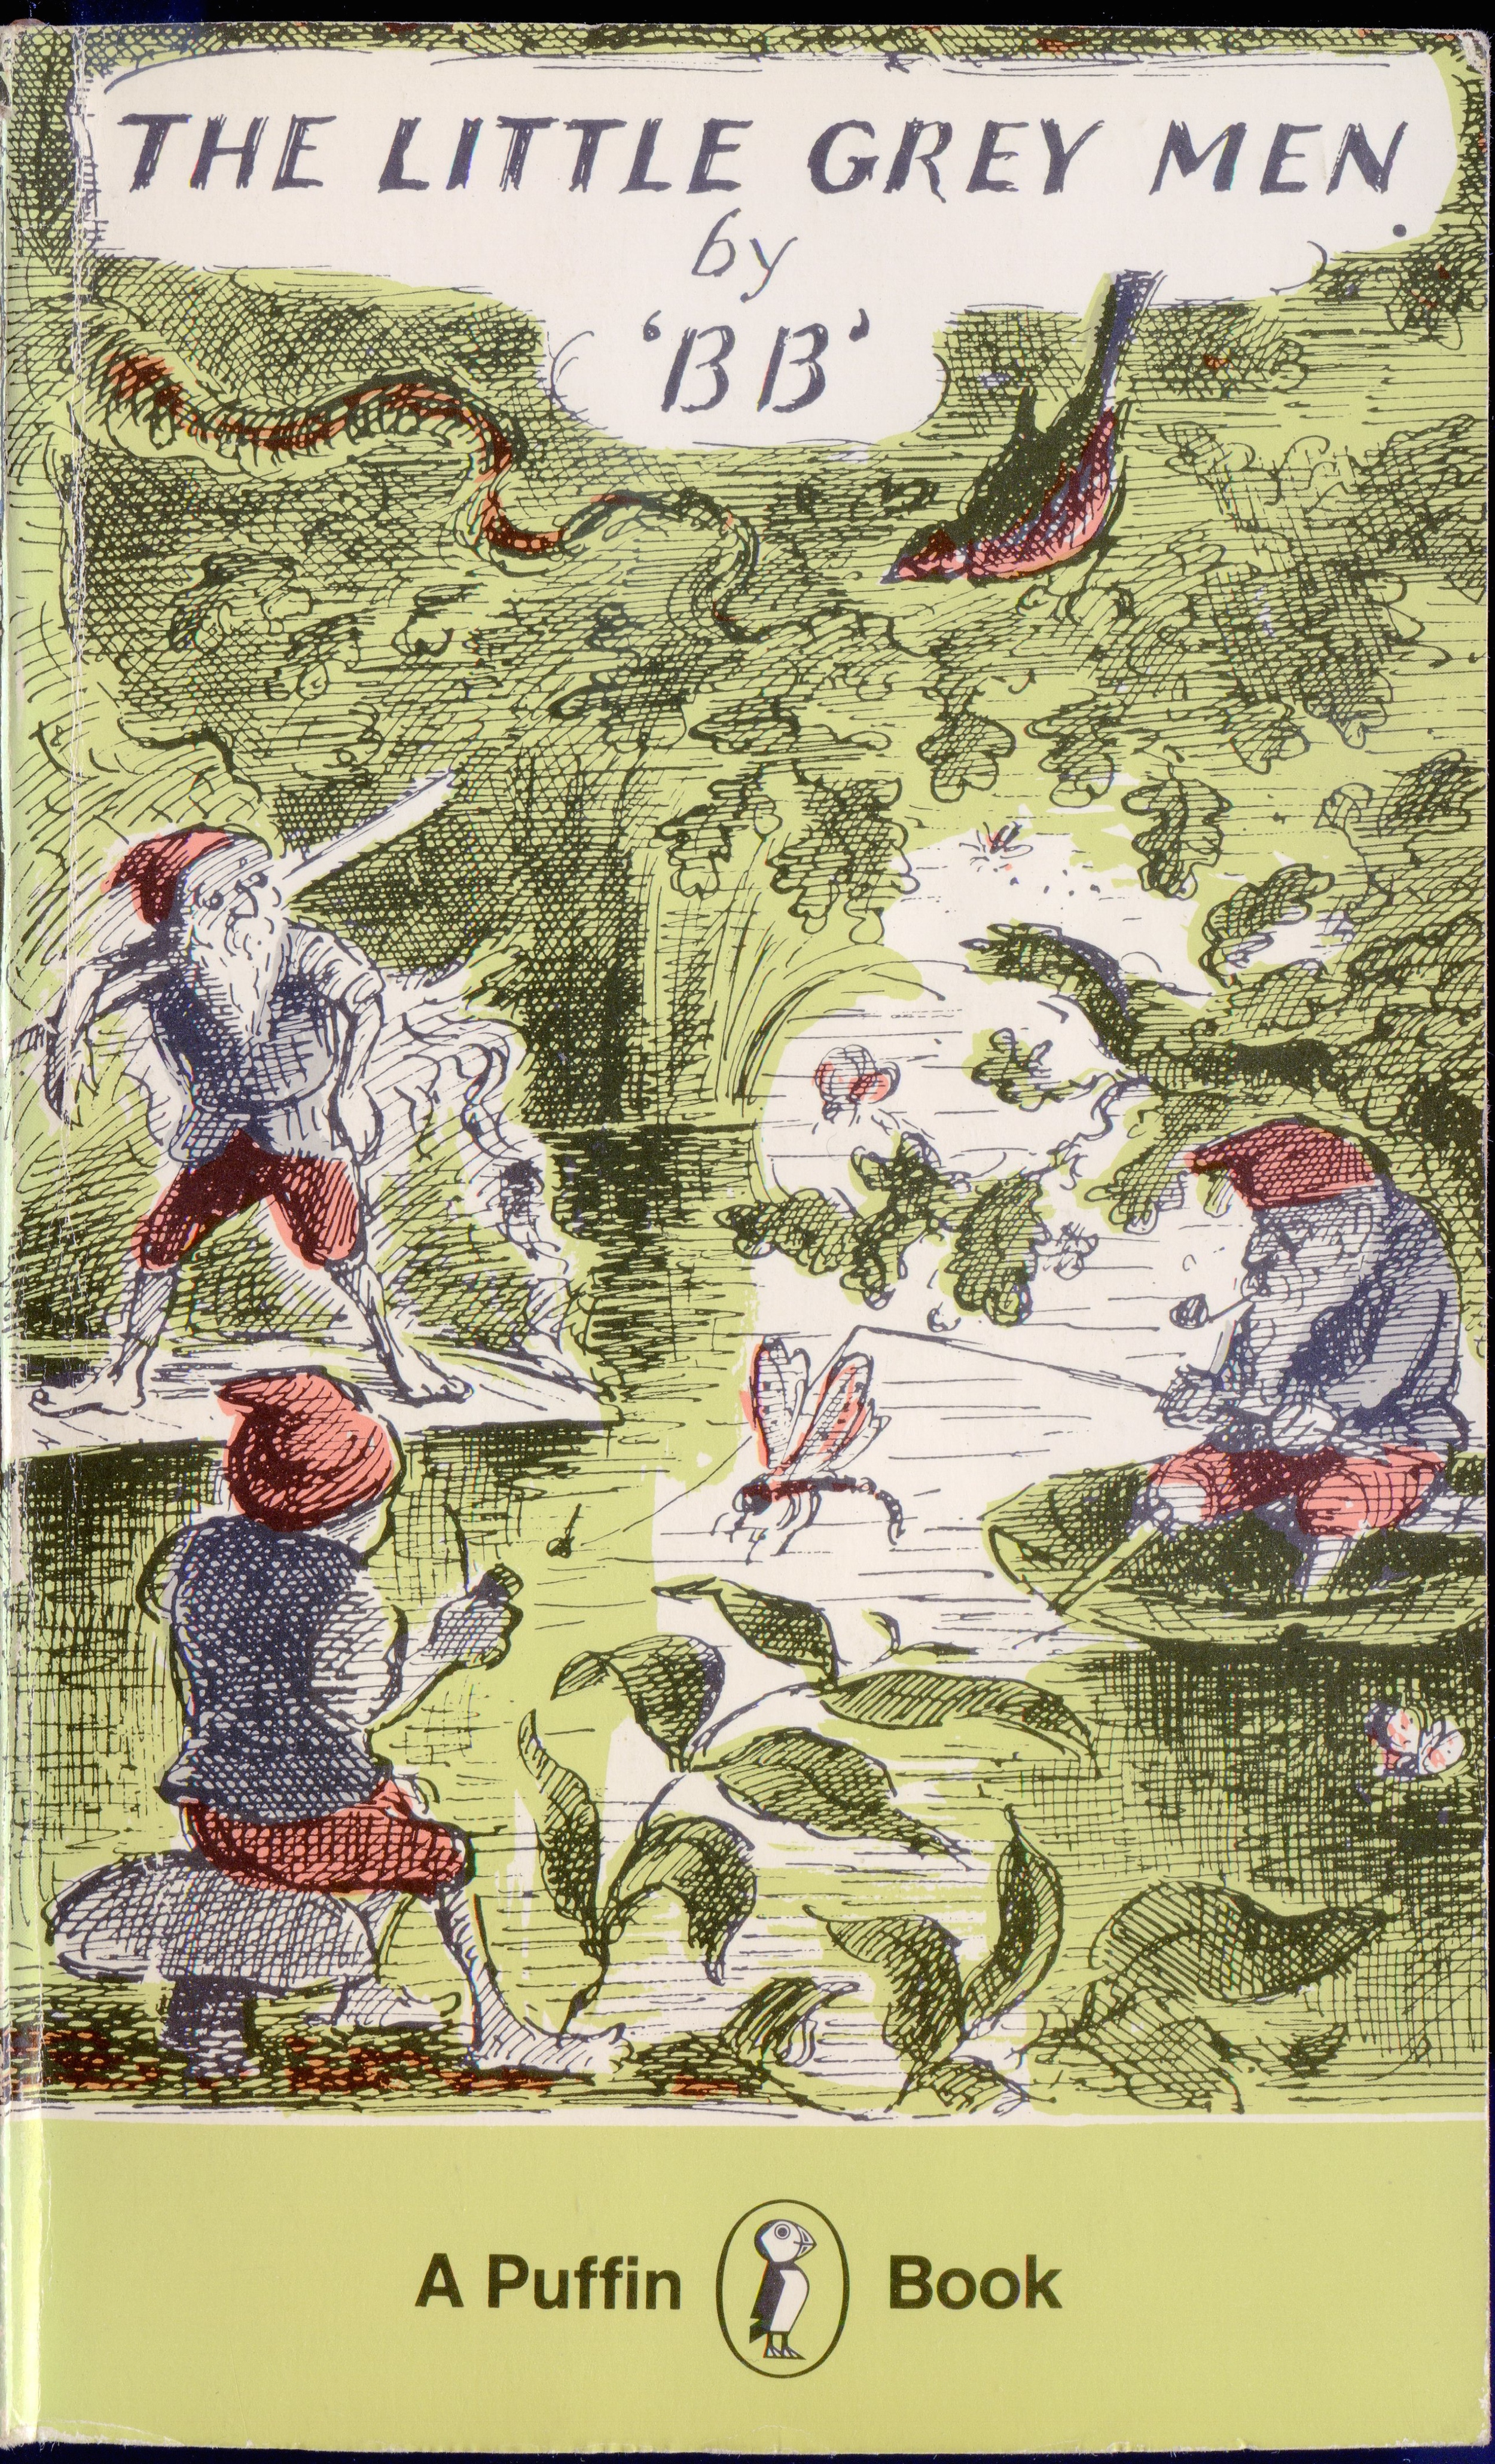 """The Little Grey Men  by """"BB"""" (Denys Watkins-Pitchford).  First published by Eyre & Spottiswood, 1942. Puffin edition 1962, this reprint 1975 (ii). Cover illustration by Edward Ardizzone.   via"""